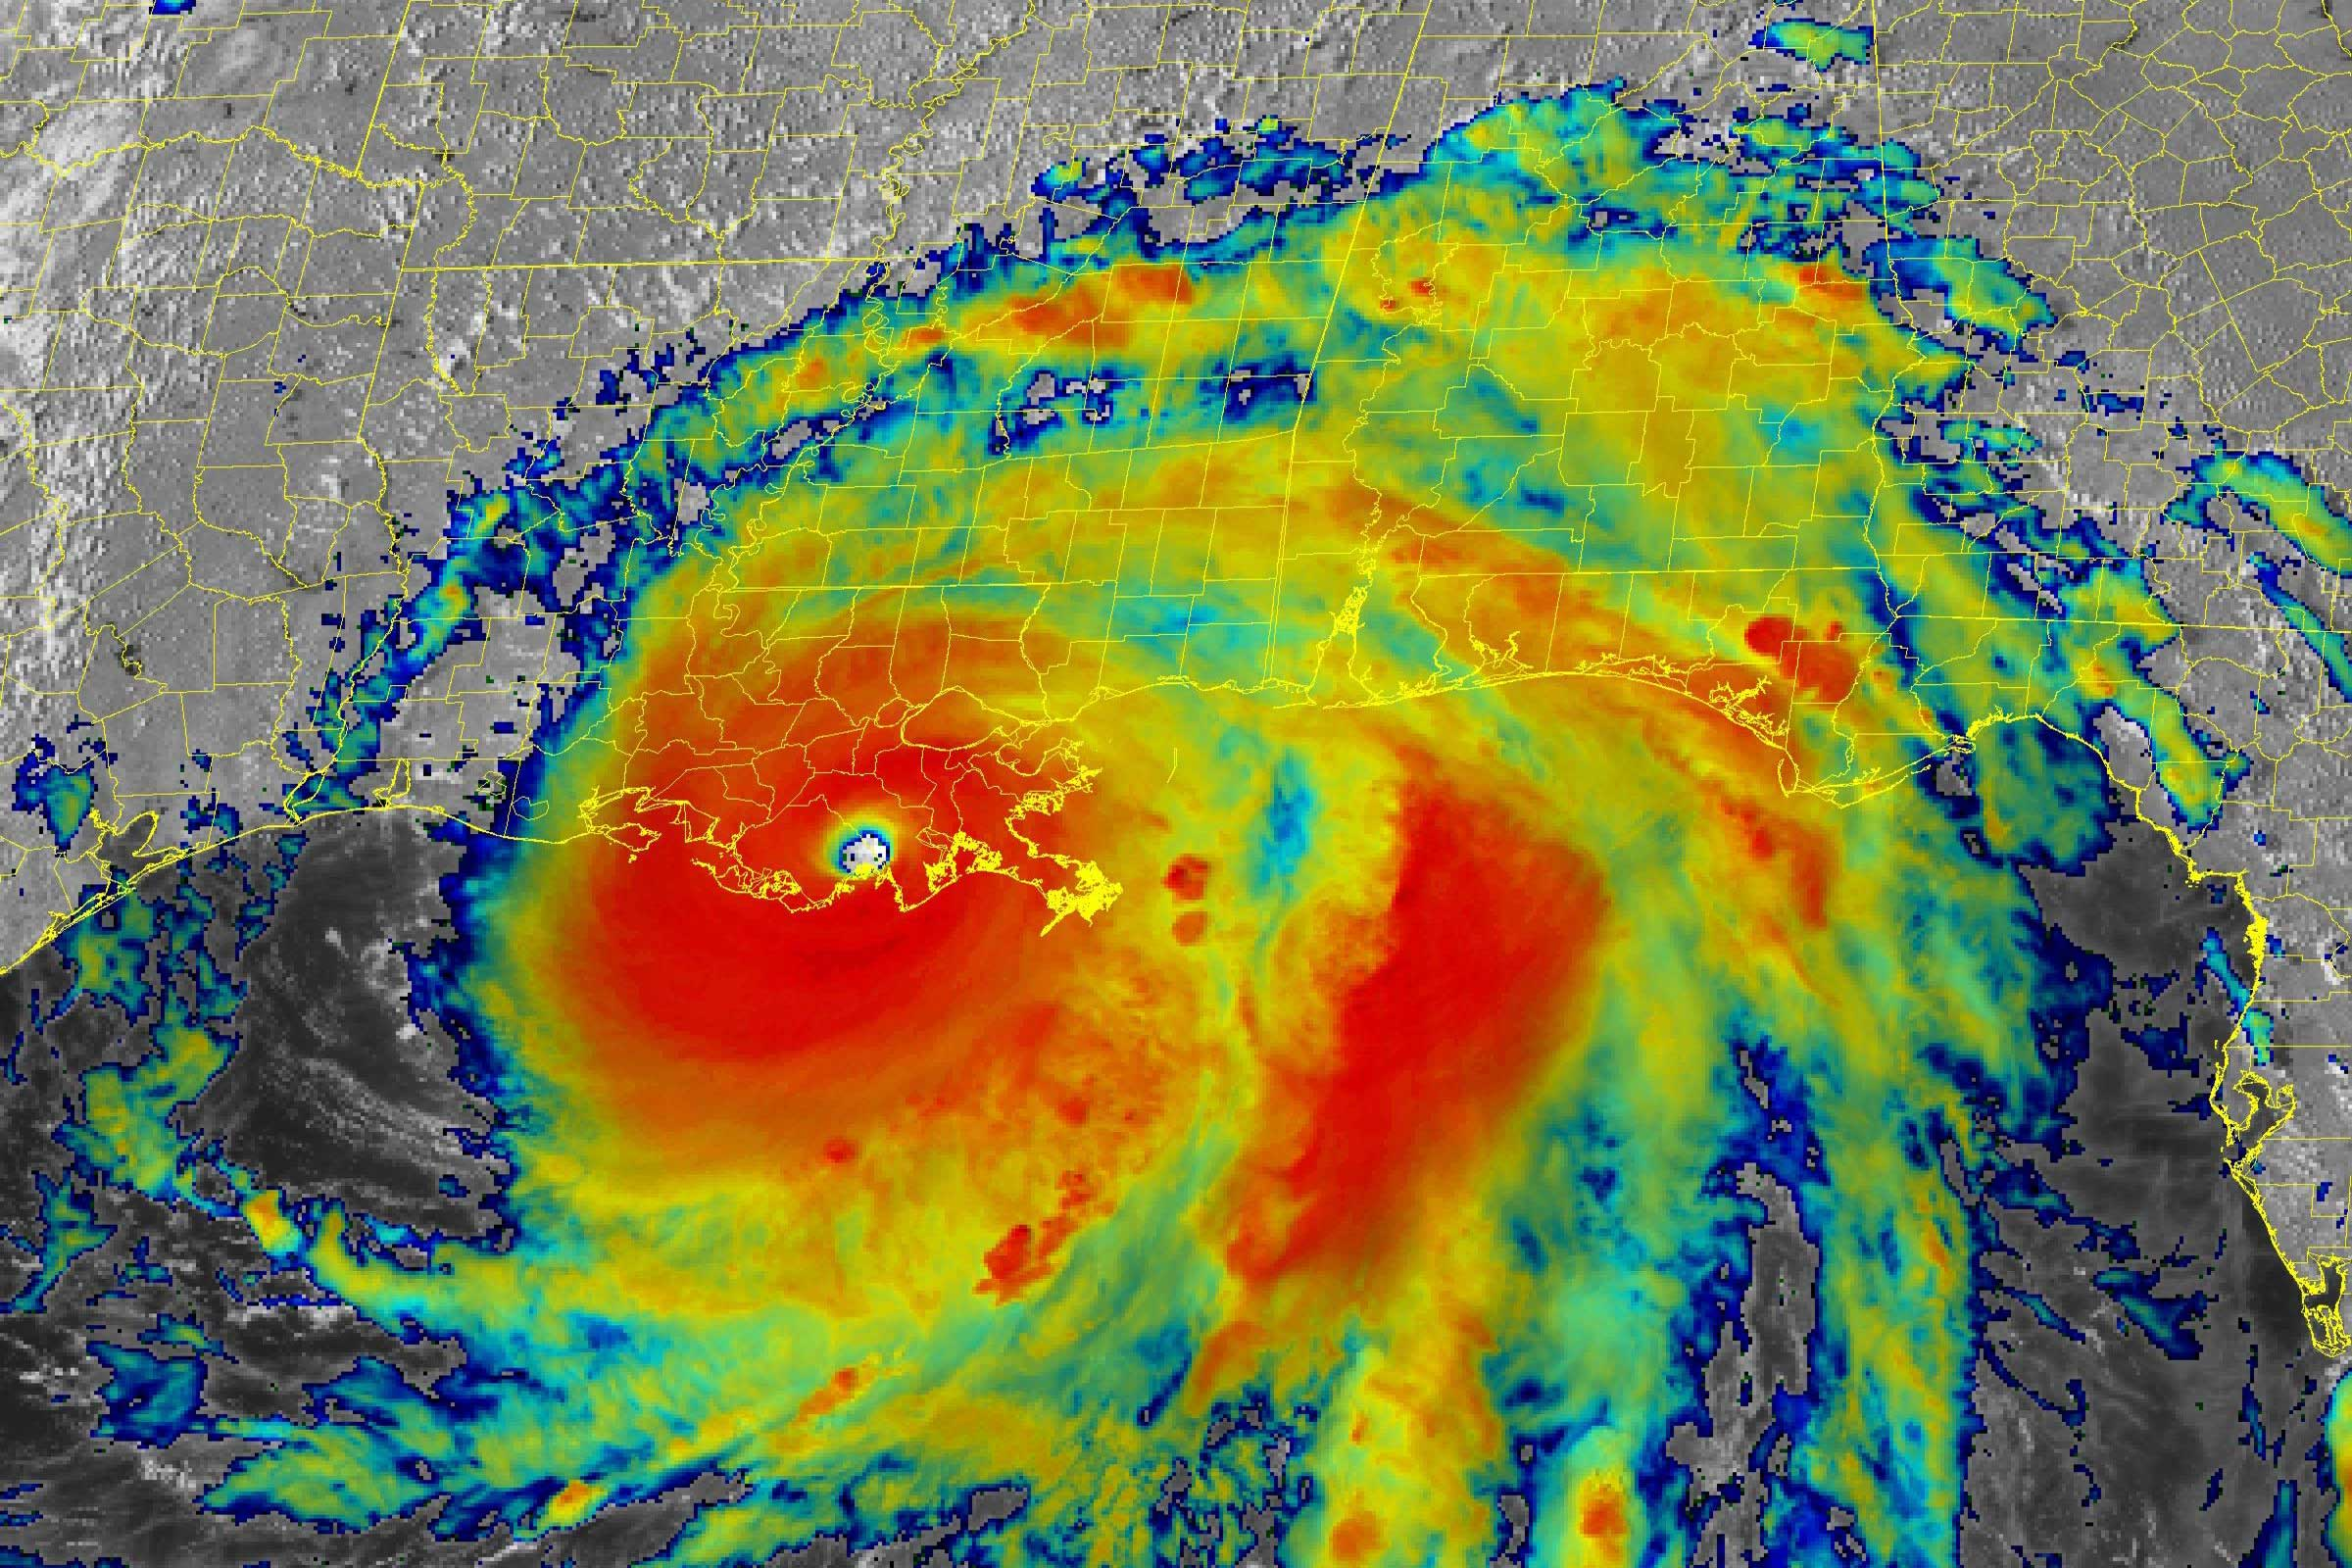 A satellite image of Hurricane Ida showing its spiral shape and using different colors to indicate wind speed.